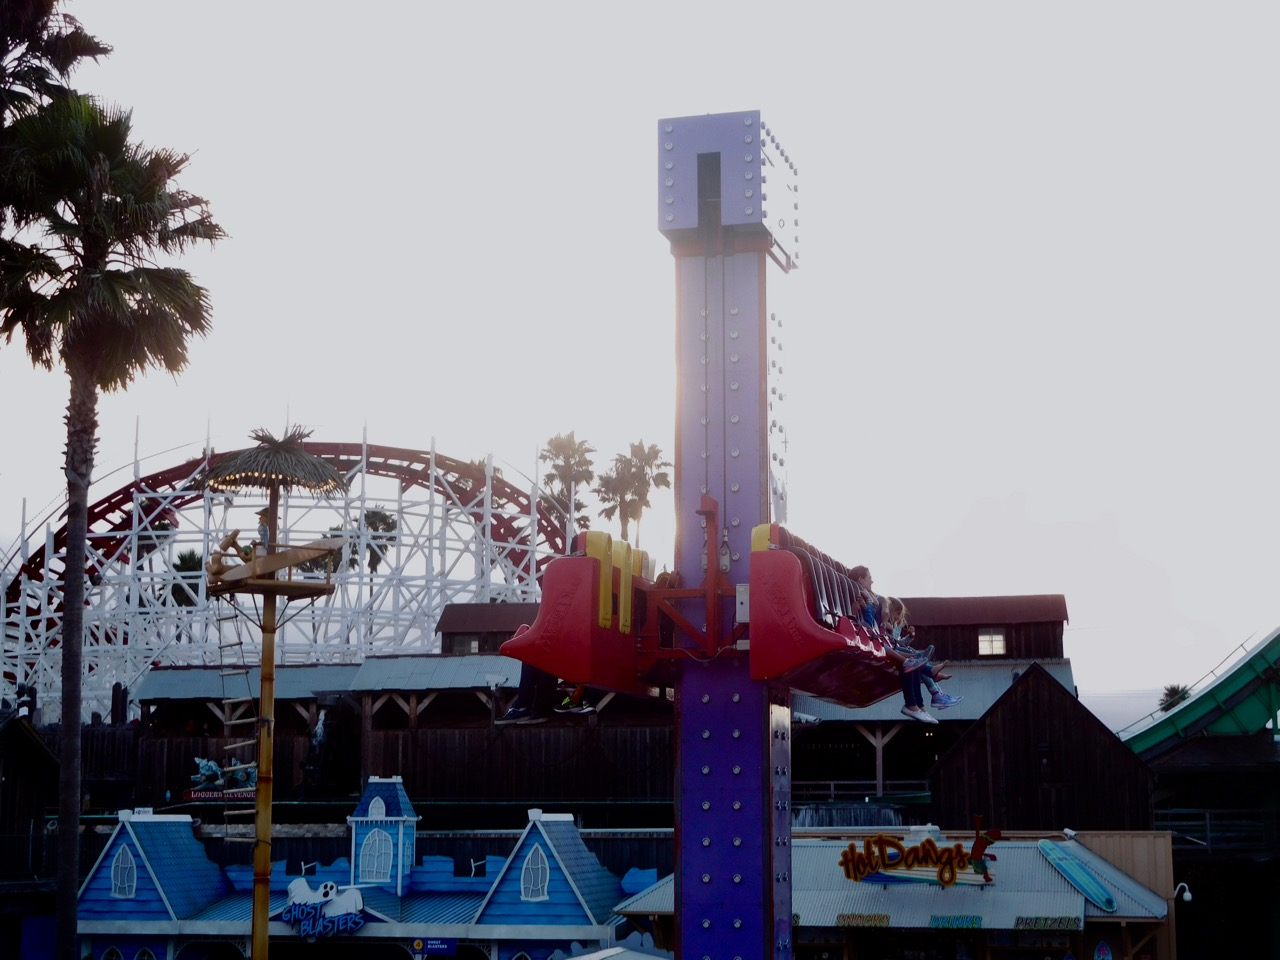 A few days in Santa Cruz - Boardwalk Amusement Park [02]